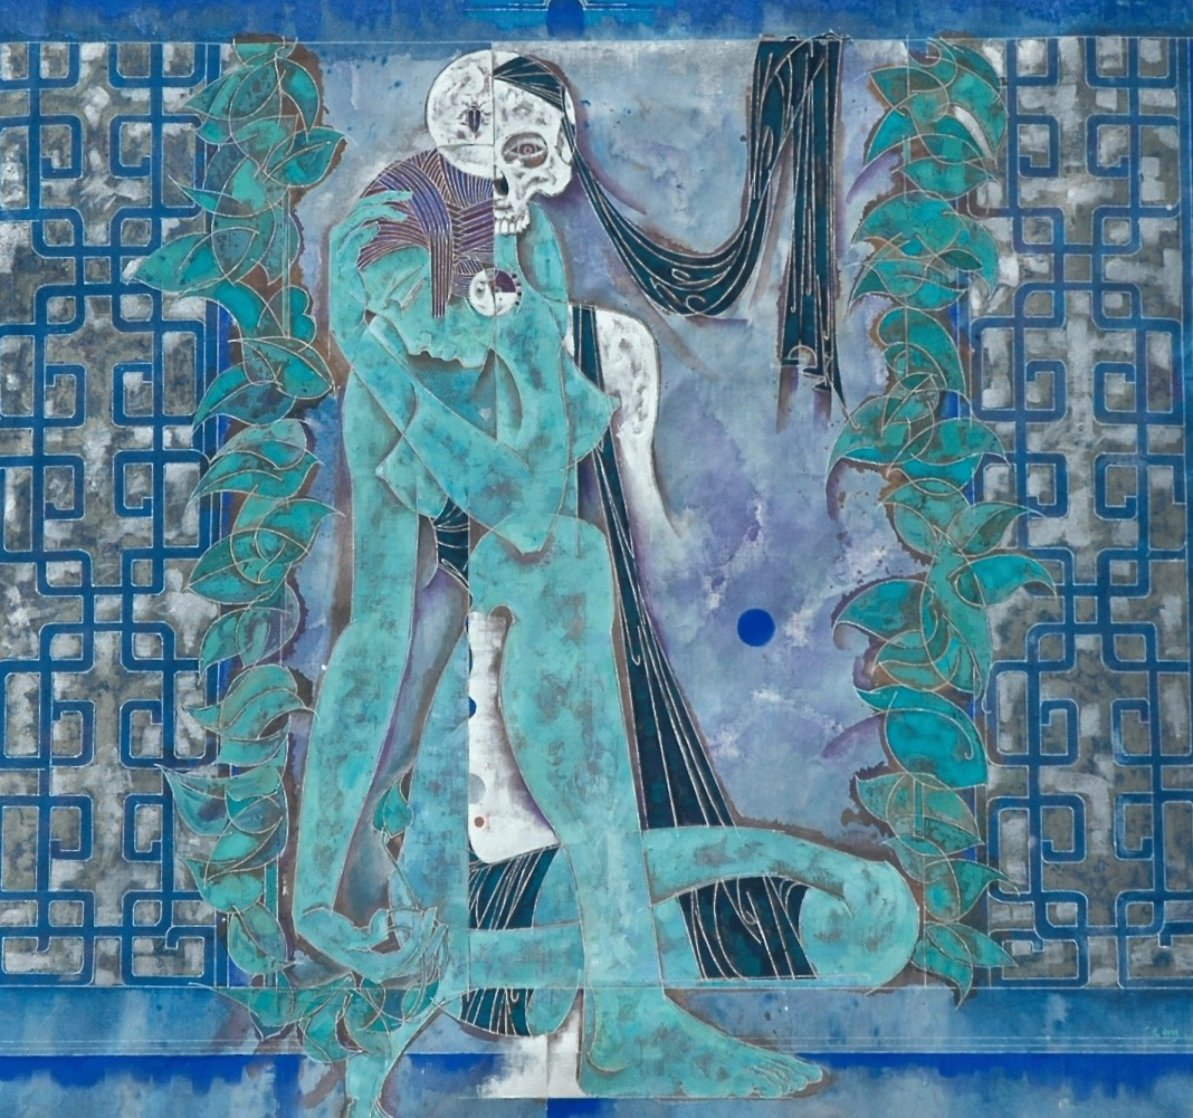 Maid and Death 1990 52x52 Super Huge Original Painting by Lu Hong